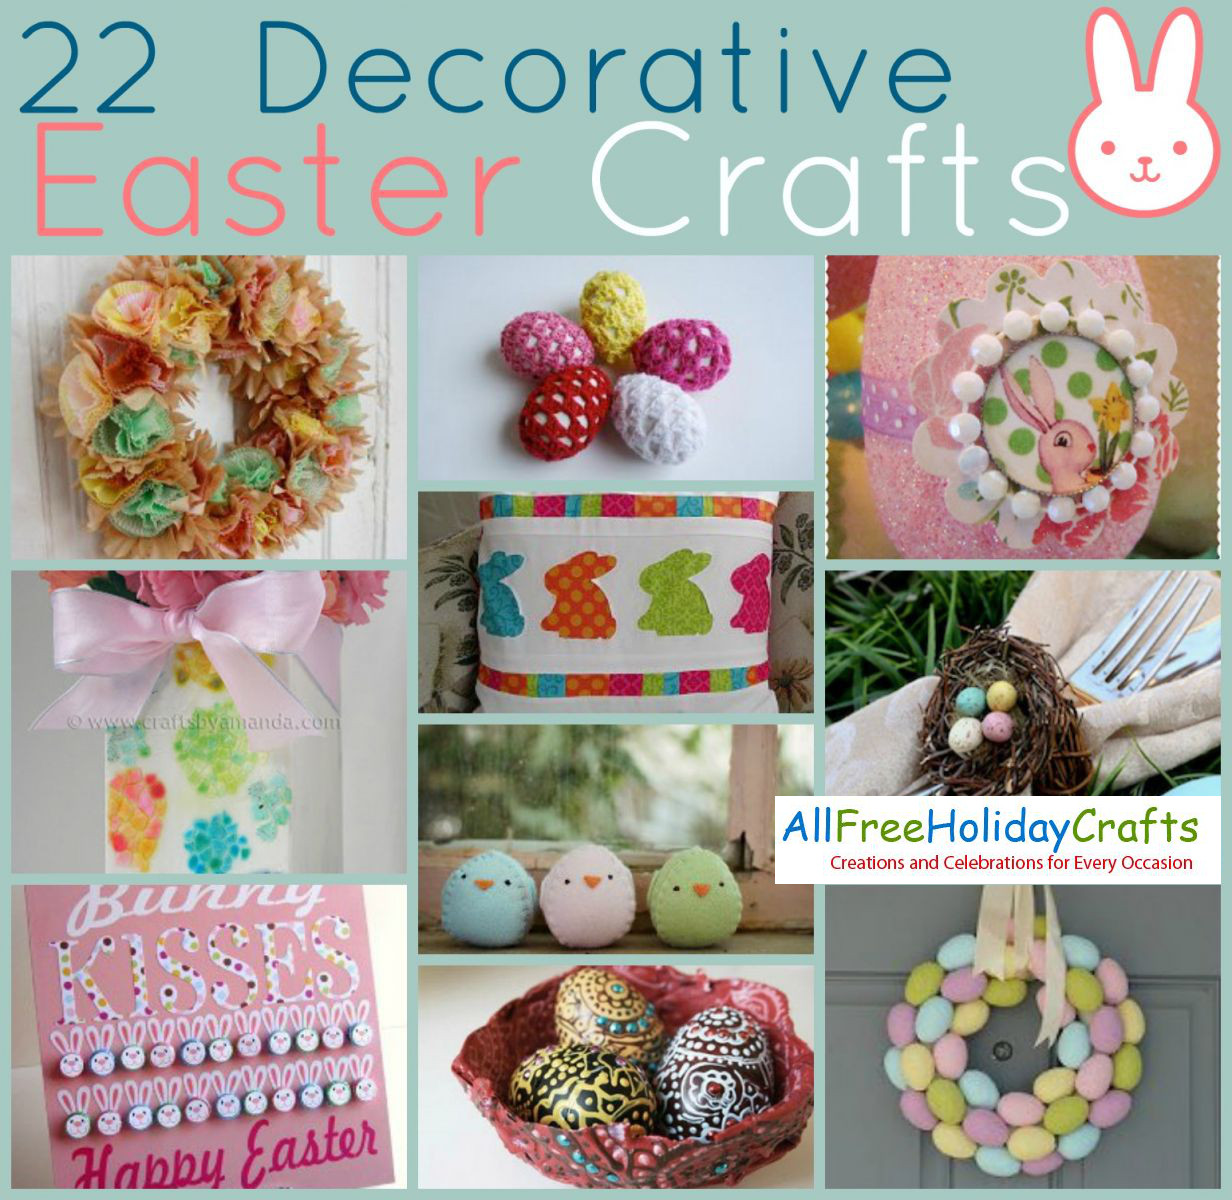 37 decorative easter crafts for All free holiday crafts